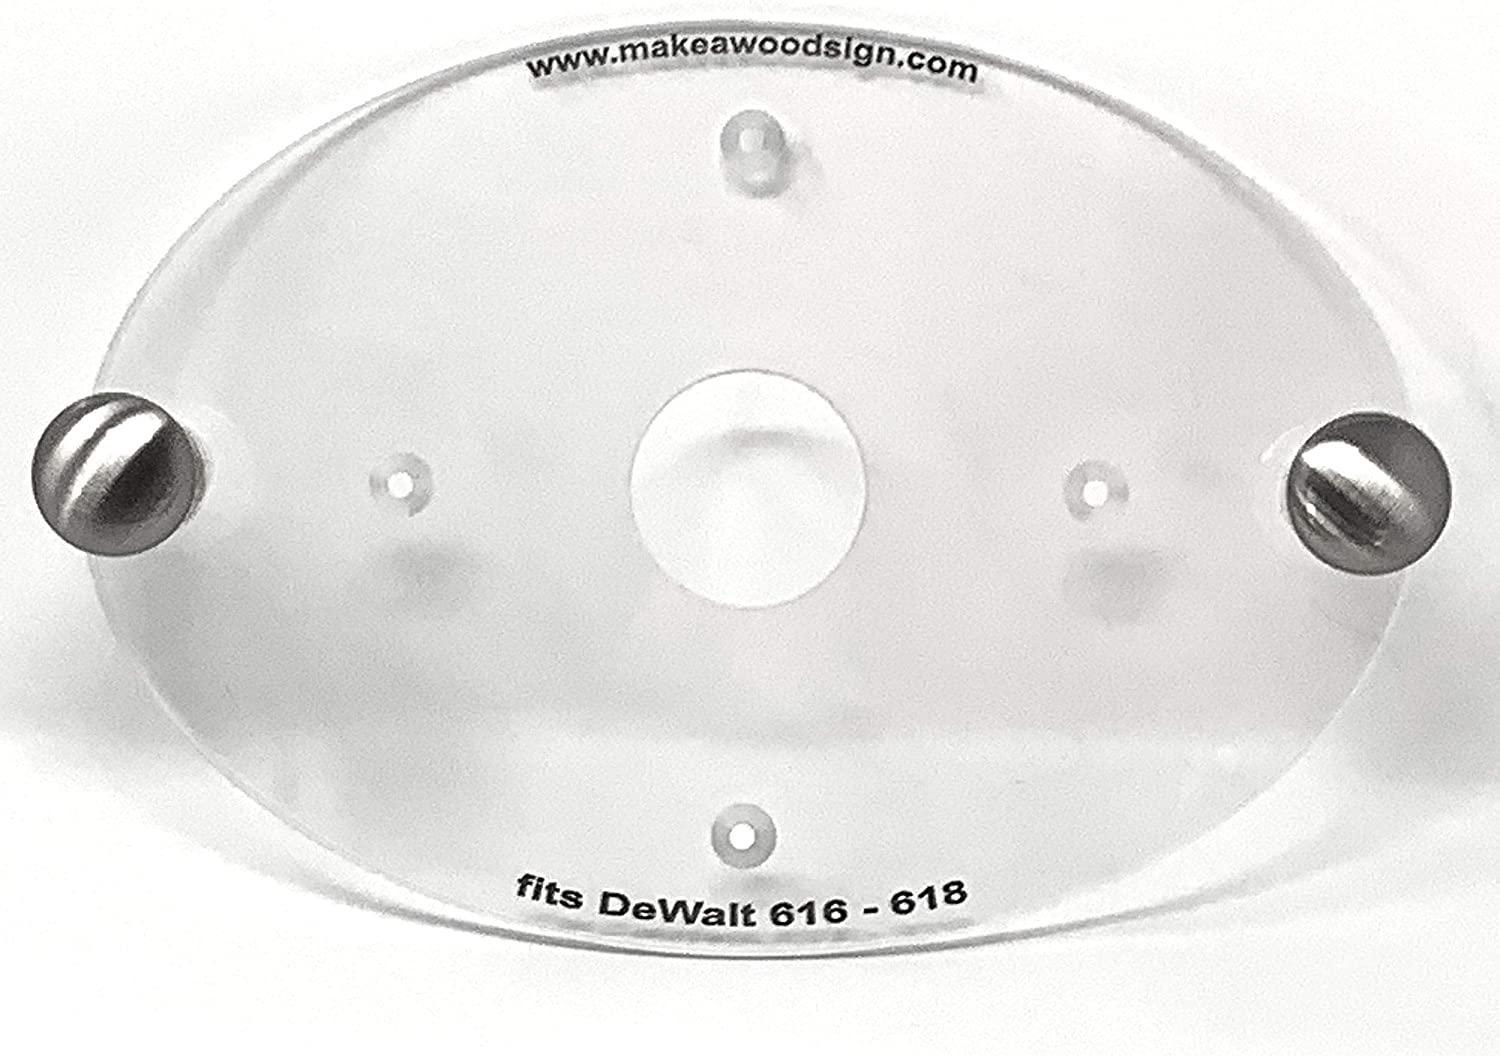 Dave's - Palm Router Acrylic with 期間限定送料無料 D Plate 新品 送料無料 Compatible Base